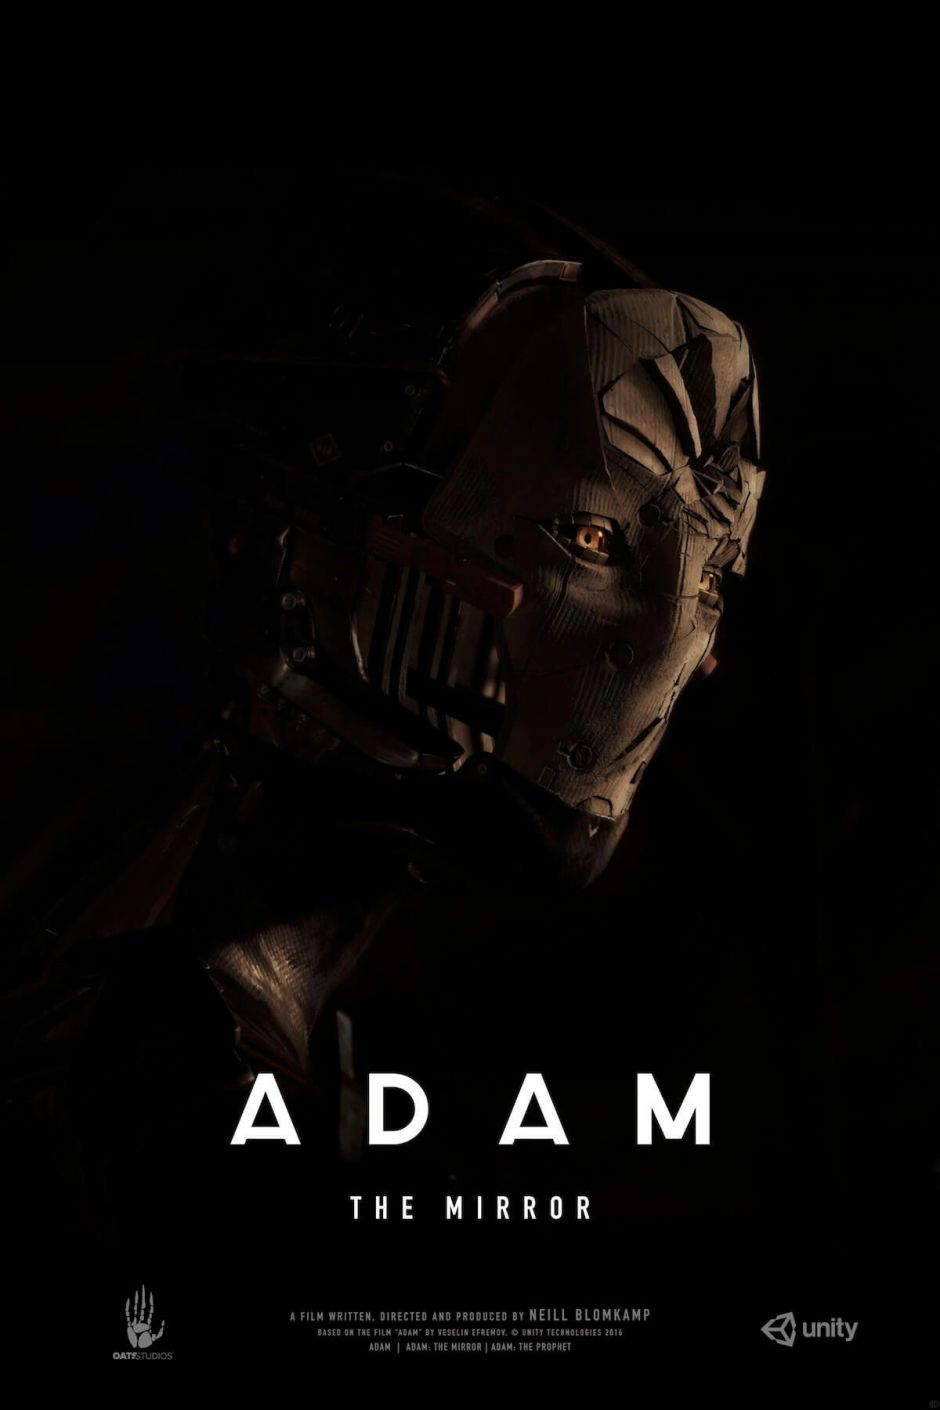 Adam The Mirror (Neill Blomkamp)